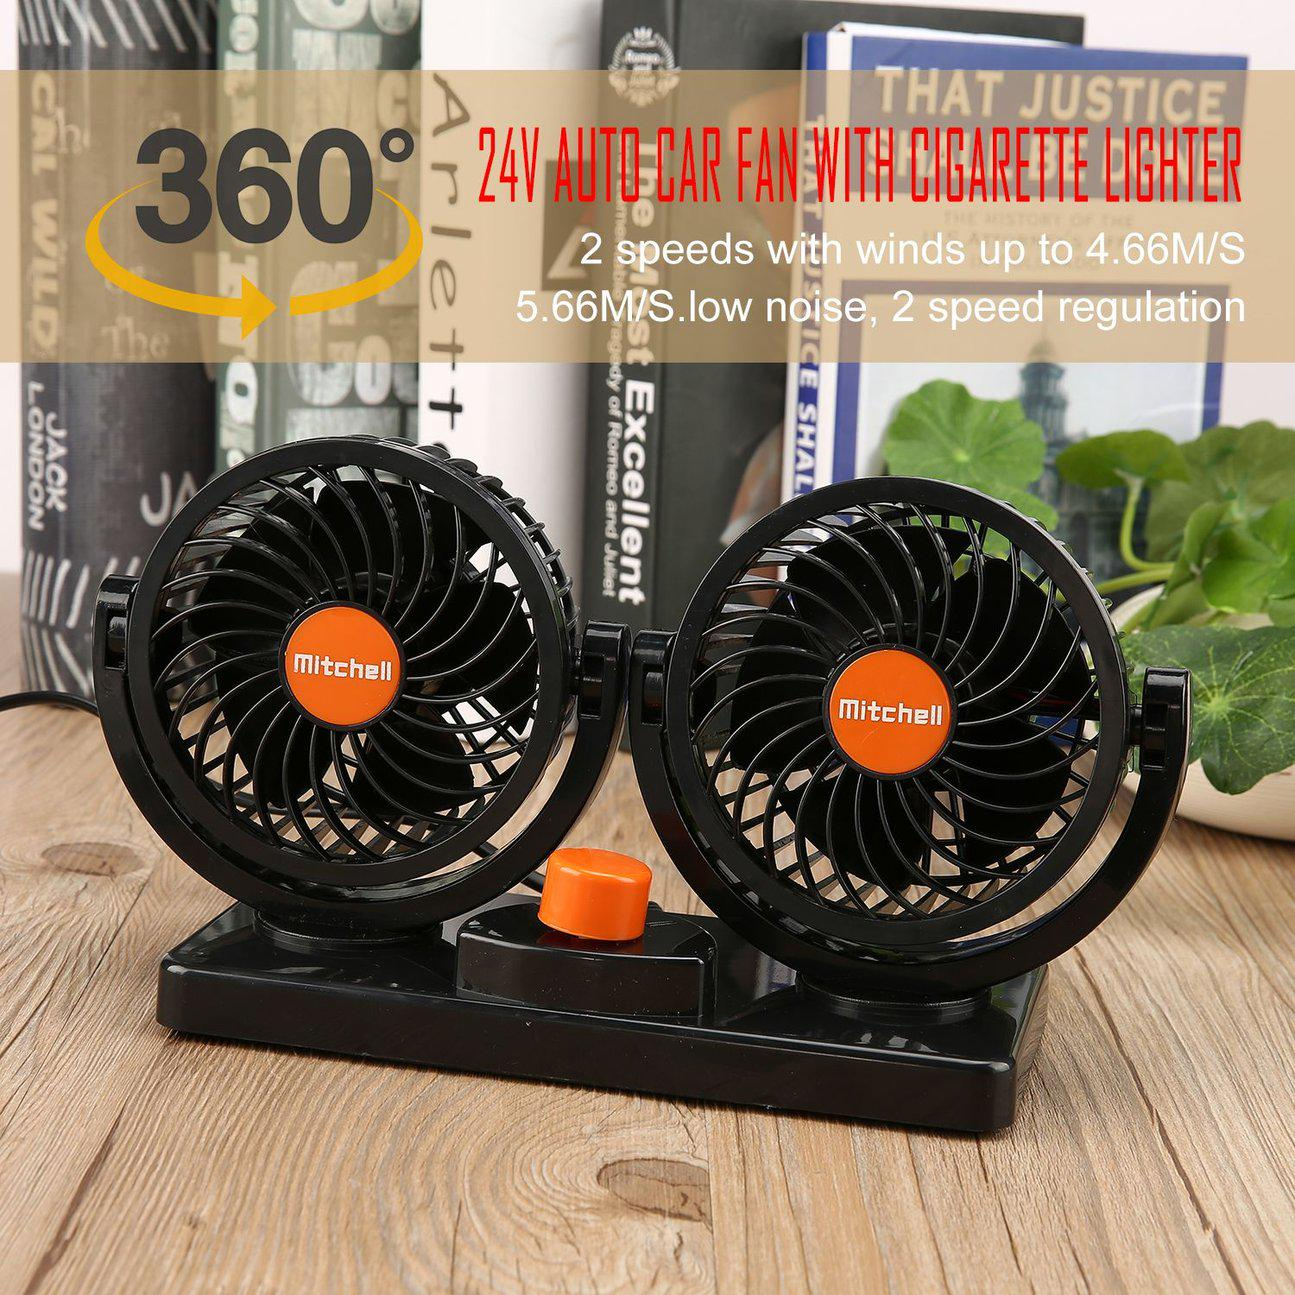 24V Car Fan Ventilador Air Conditioning Double Head Auto Air Cooler Cars Ventilator Double Motor For Car 360 Degree Rotatable 29-in Cables, Adapters & Sockets from Automobiles & Motorcycles